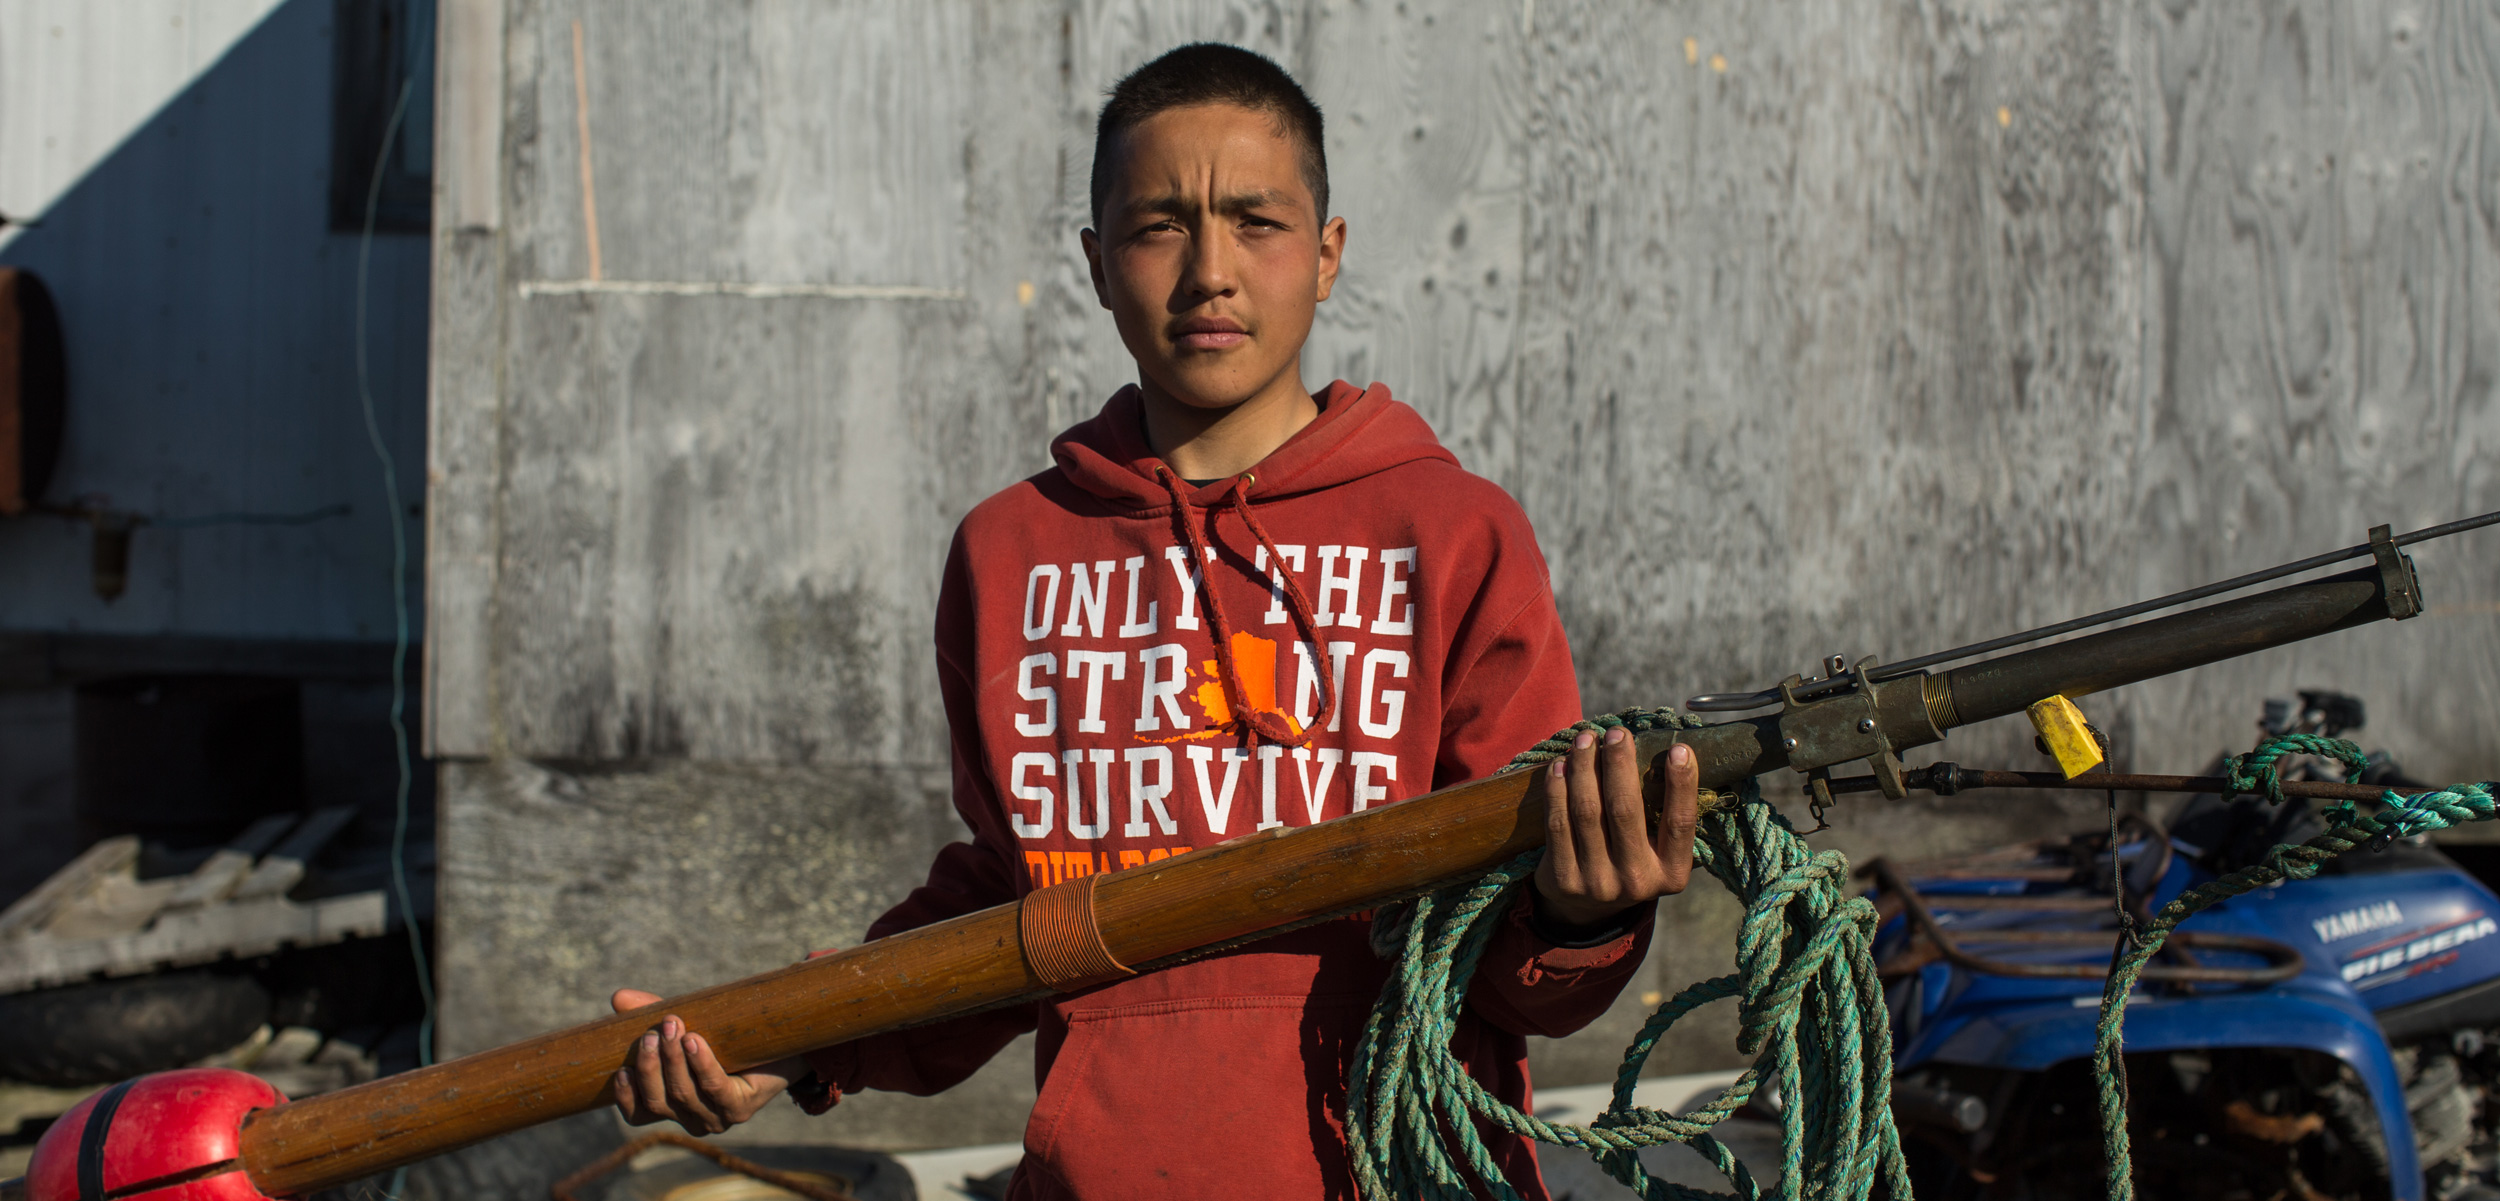 Chris Apassingok, 16, holds the darting gun he used to harpoon a whale this spring outside his family's home in Gambell, Alaska. Photo by Ash Adams